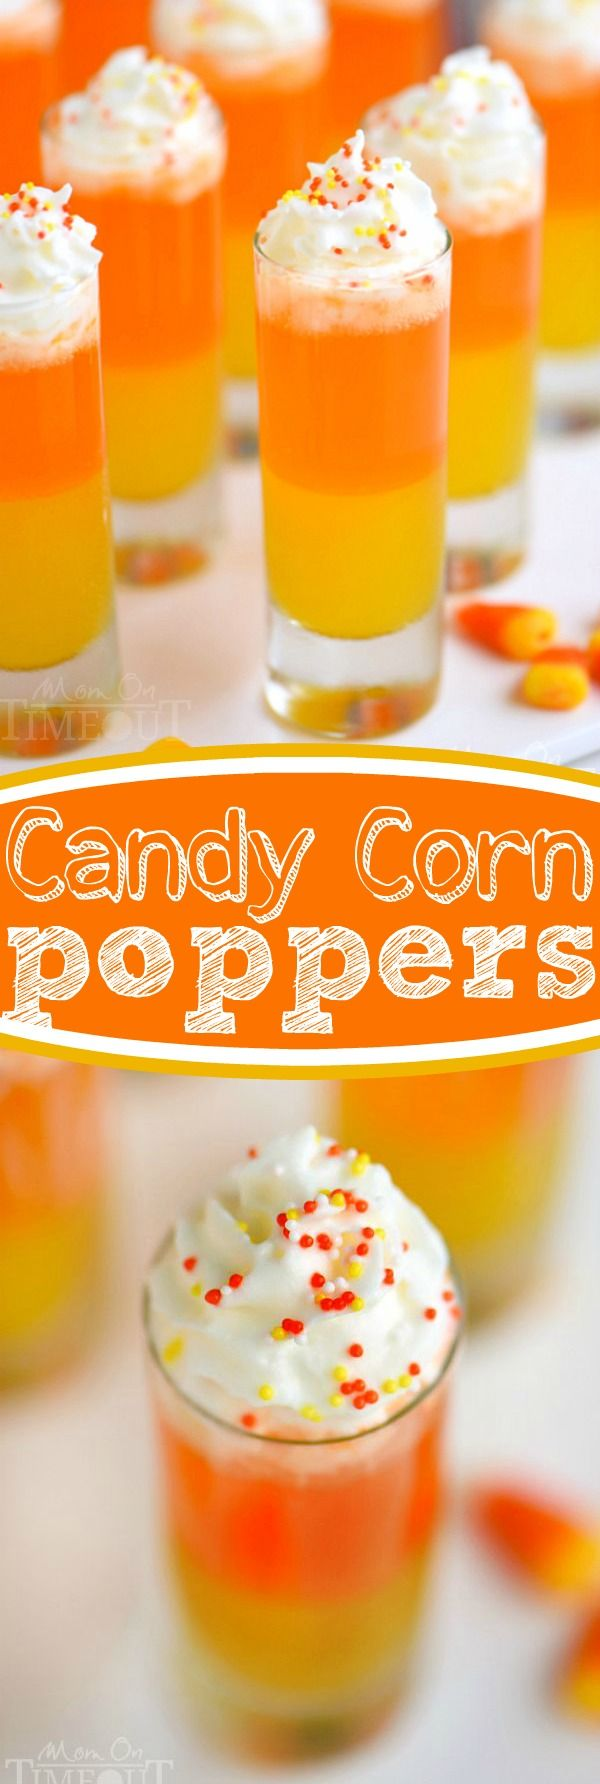 These Candy Corn Poppers are the perfect sweet drink for kids of all ages! This layered drink is impressive and EASY! #ShareTheJoy #ad